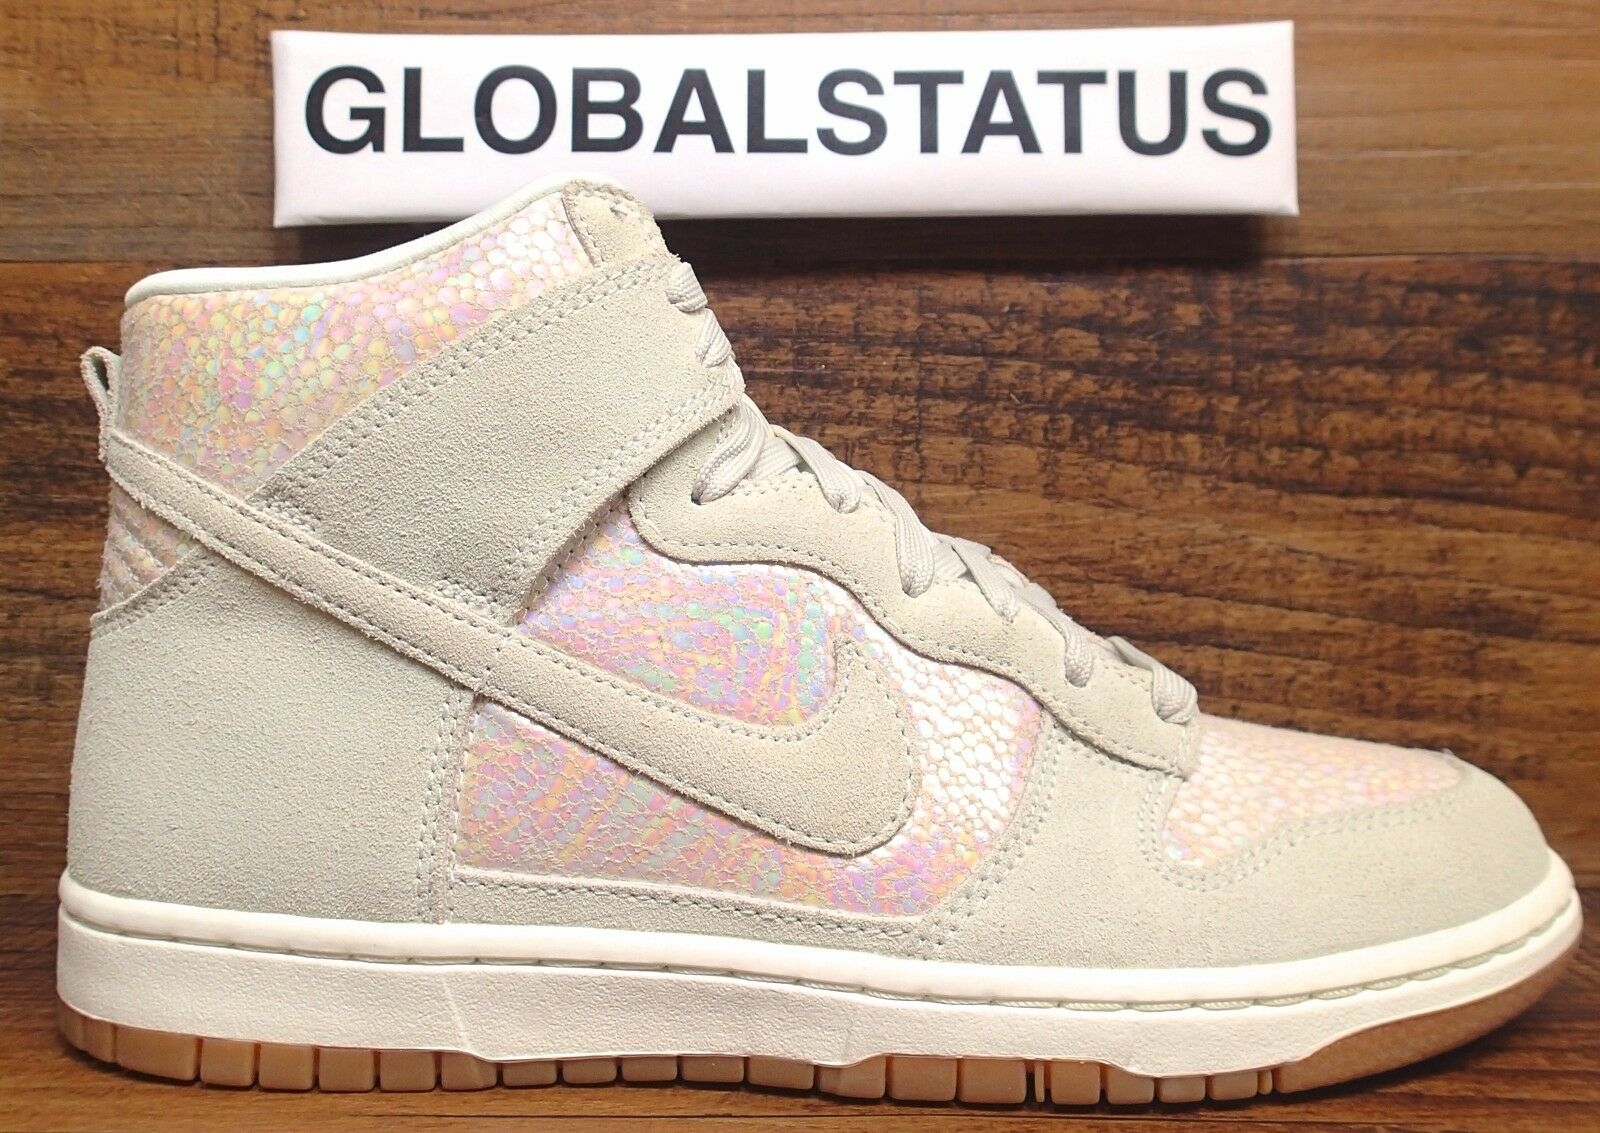 NIKE WOMENS DUNK HIGH SKINNY PRM IRIDESCENT METALLIC SHOES 472488 005 Price reduction Great discount